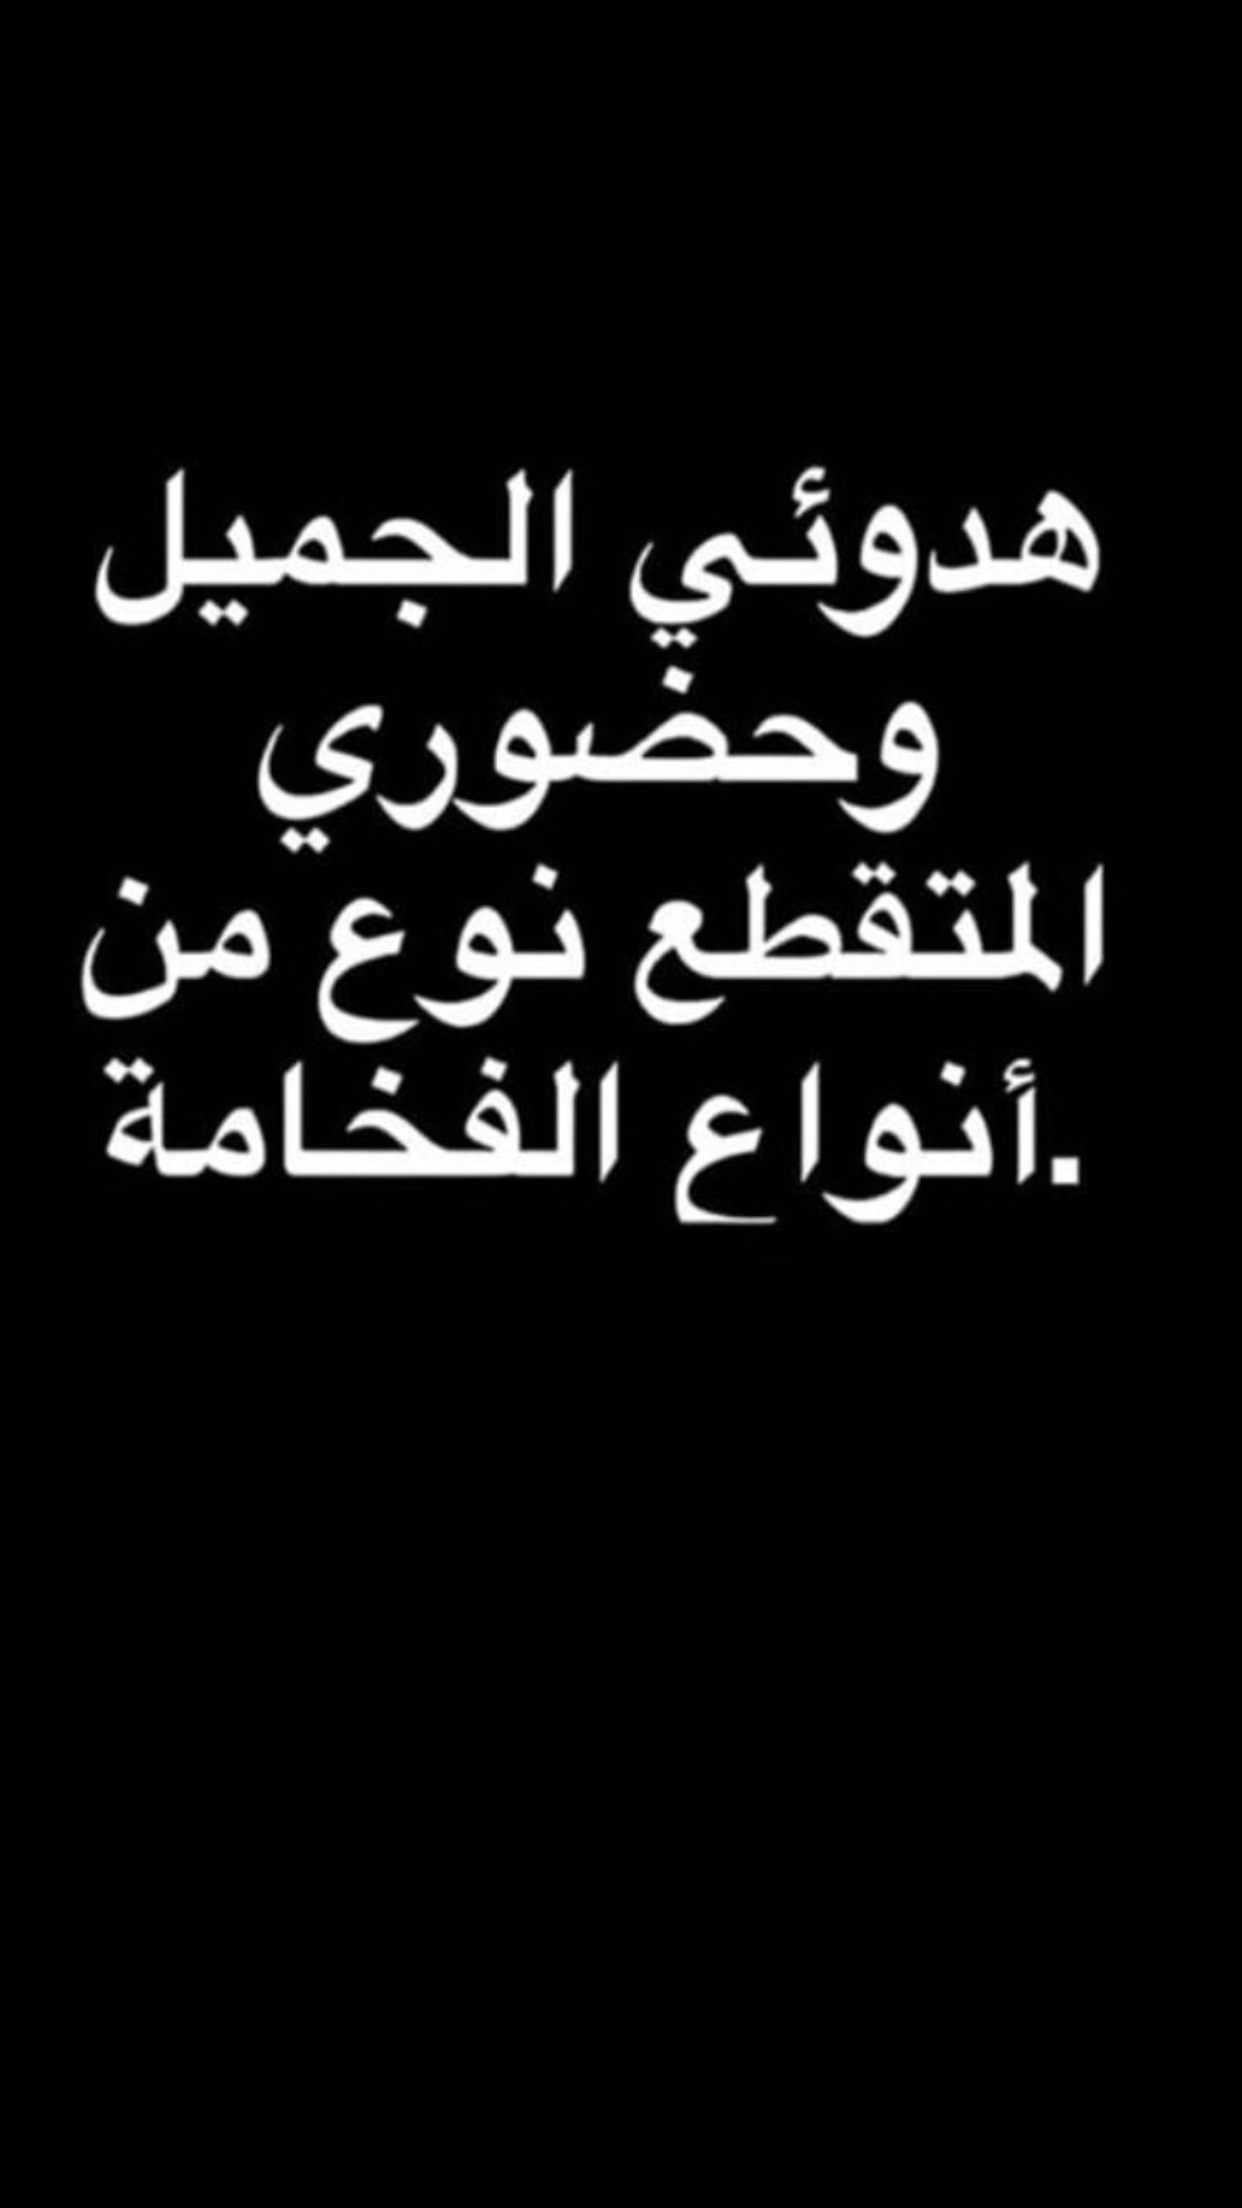 Pin by iiwo55 on quotation | Funny arabic quotes, Arabic